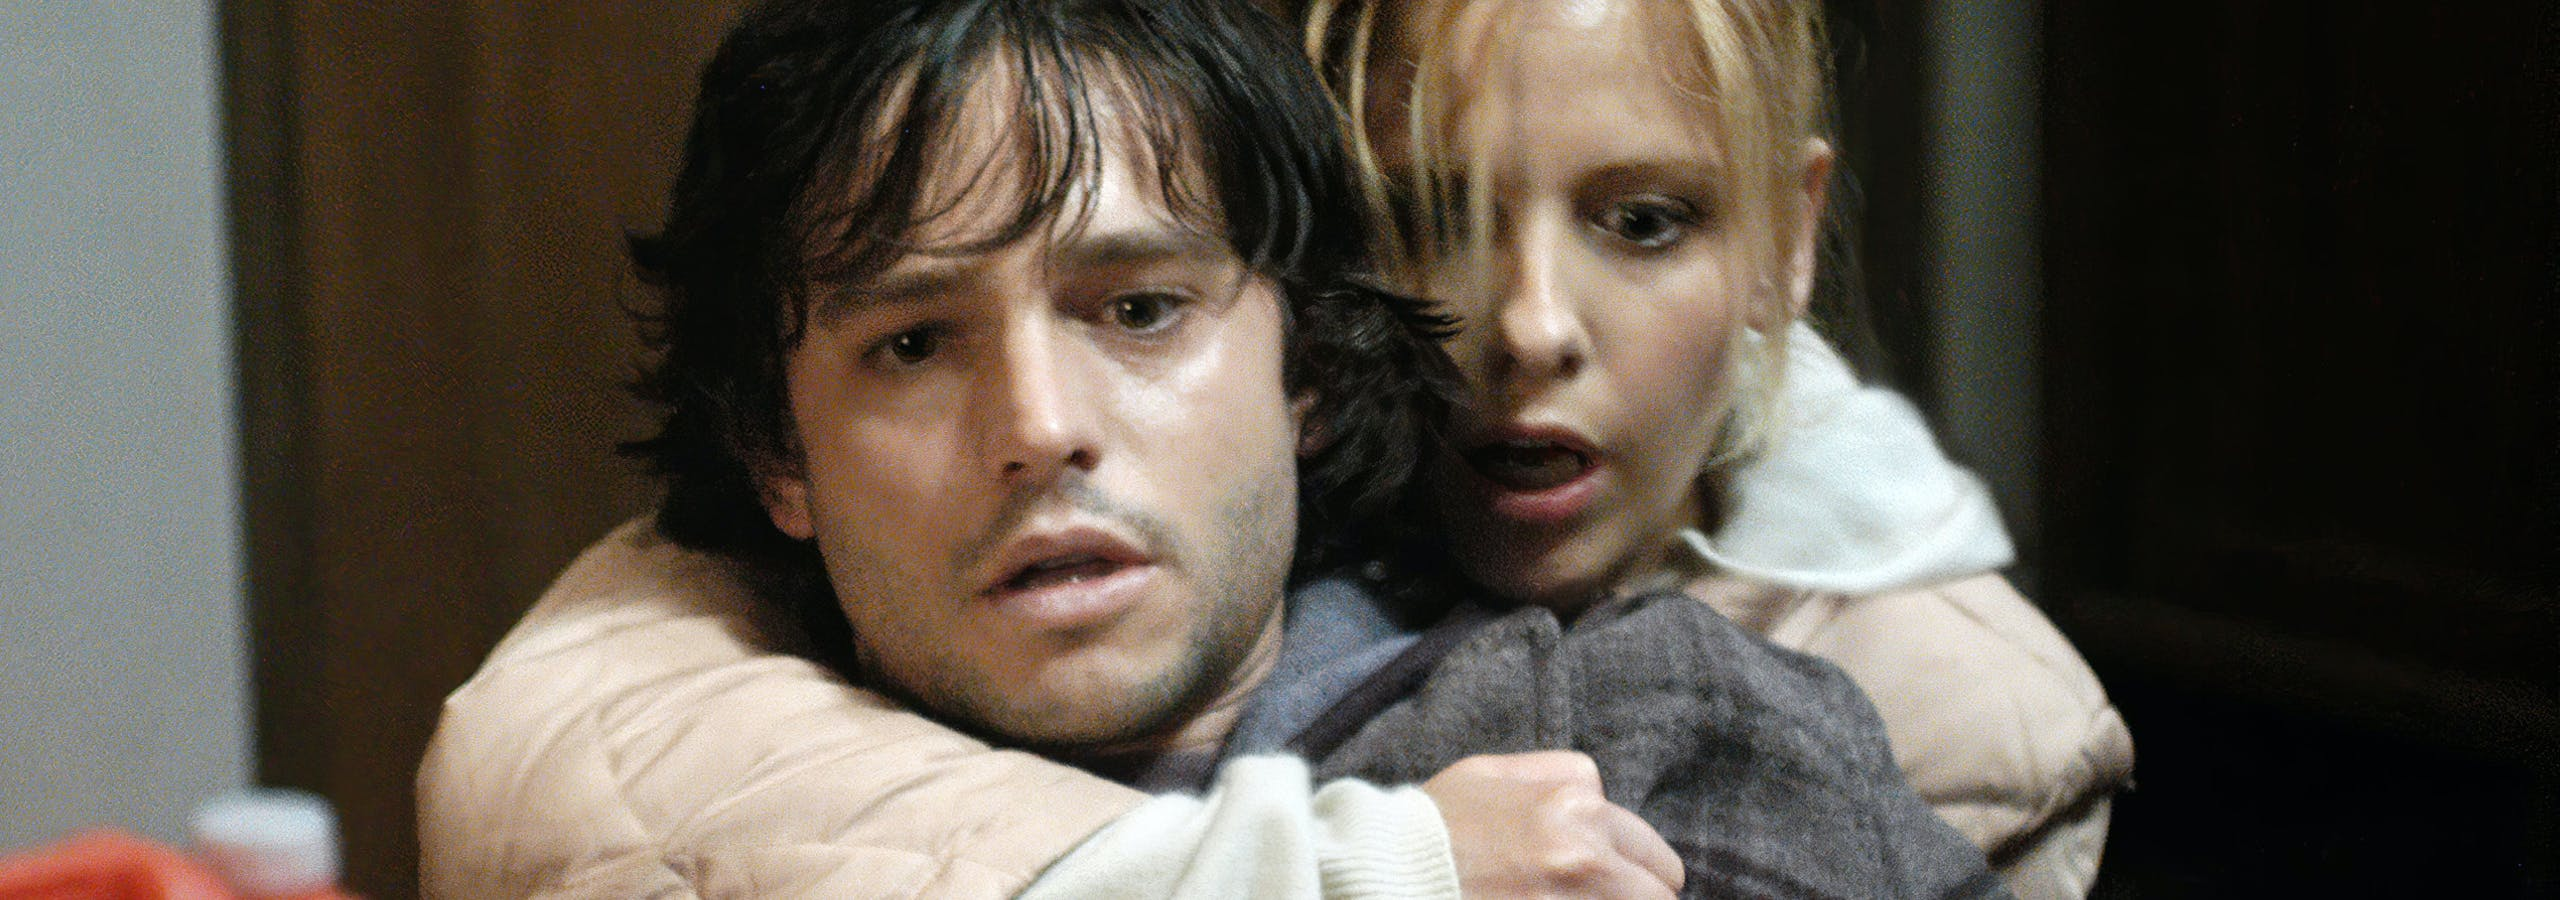 Watch The Grudge 2004 Online Starzplay